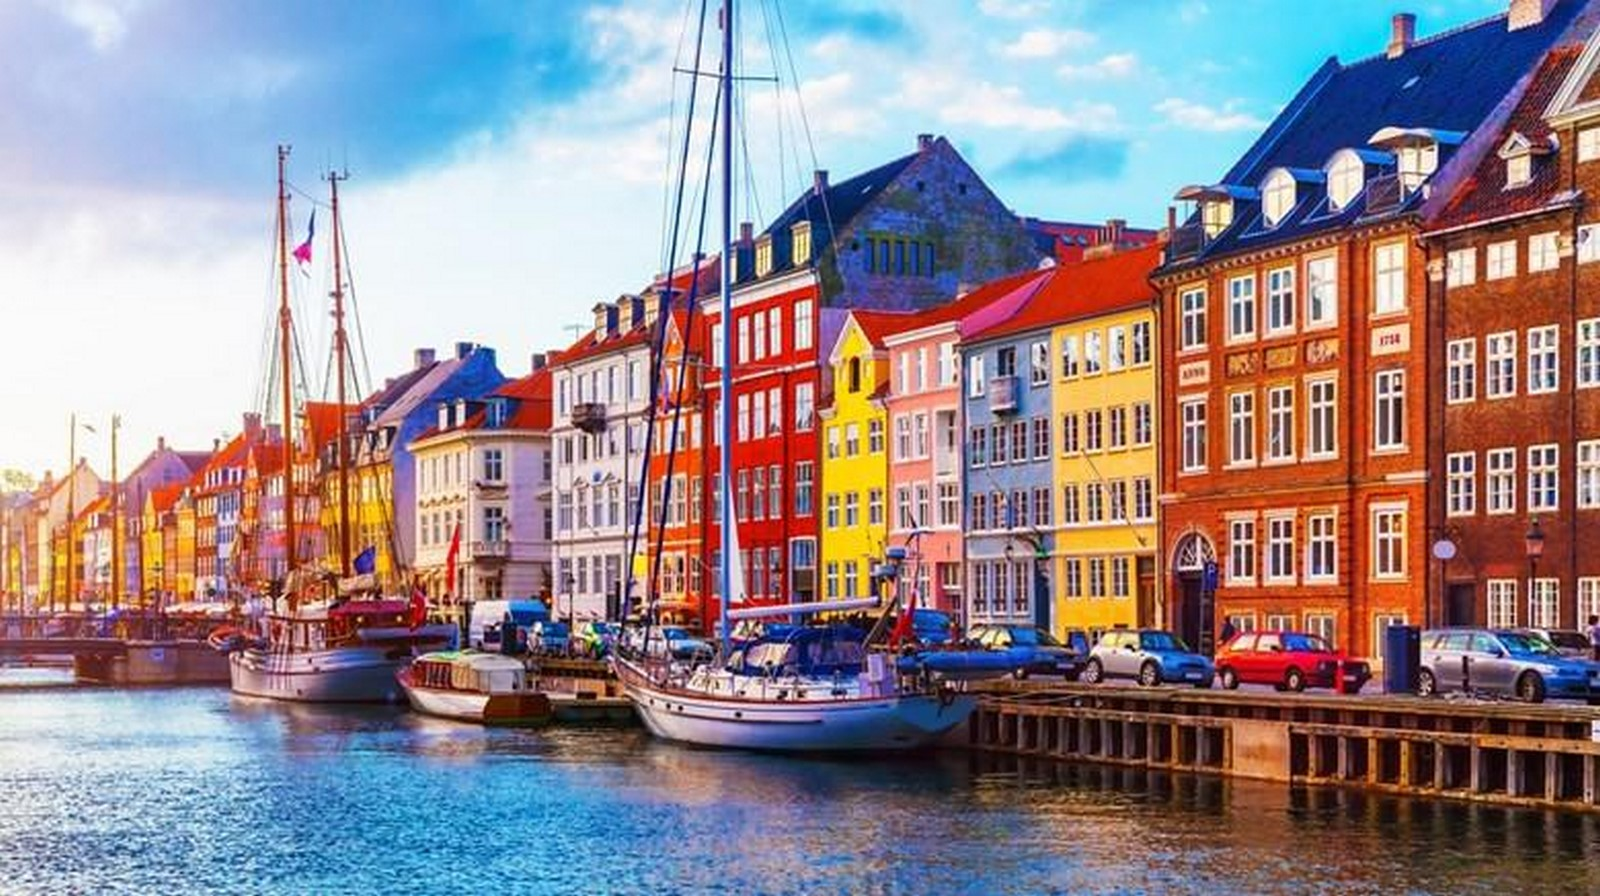 20 Examples of World's Best Cities - Sheet2